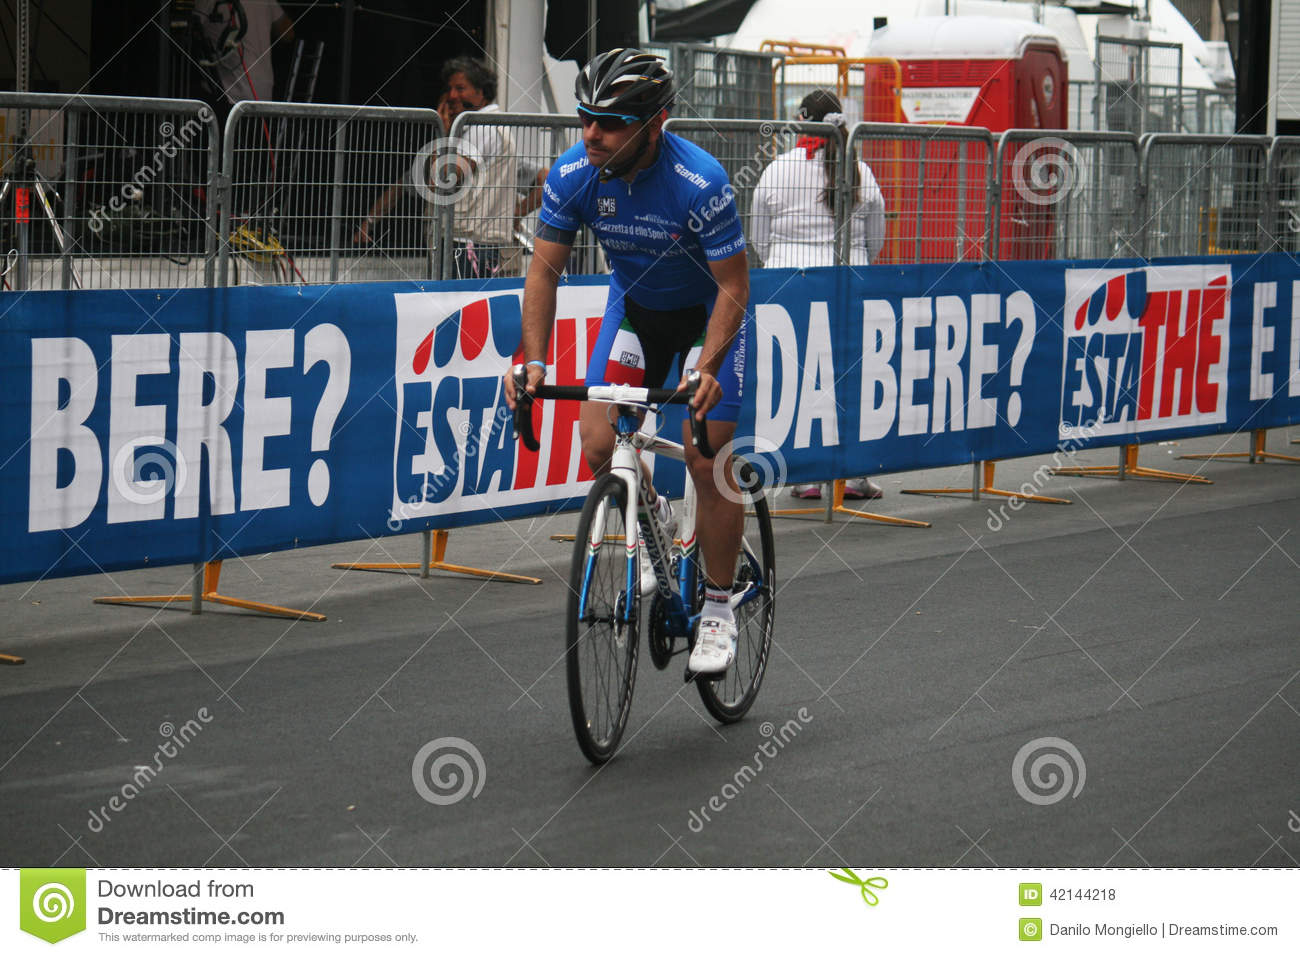 Pablo Bettini